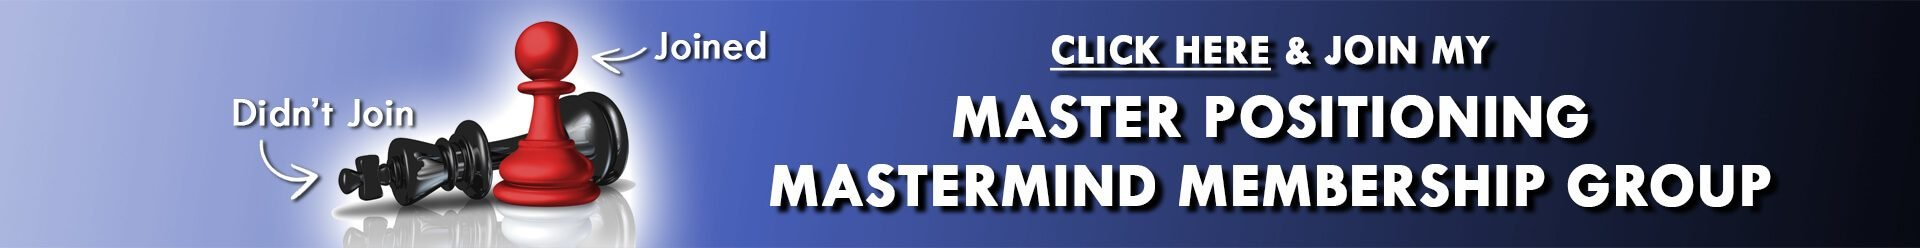 Master Positioning Mastermind Membership Group